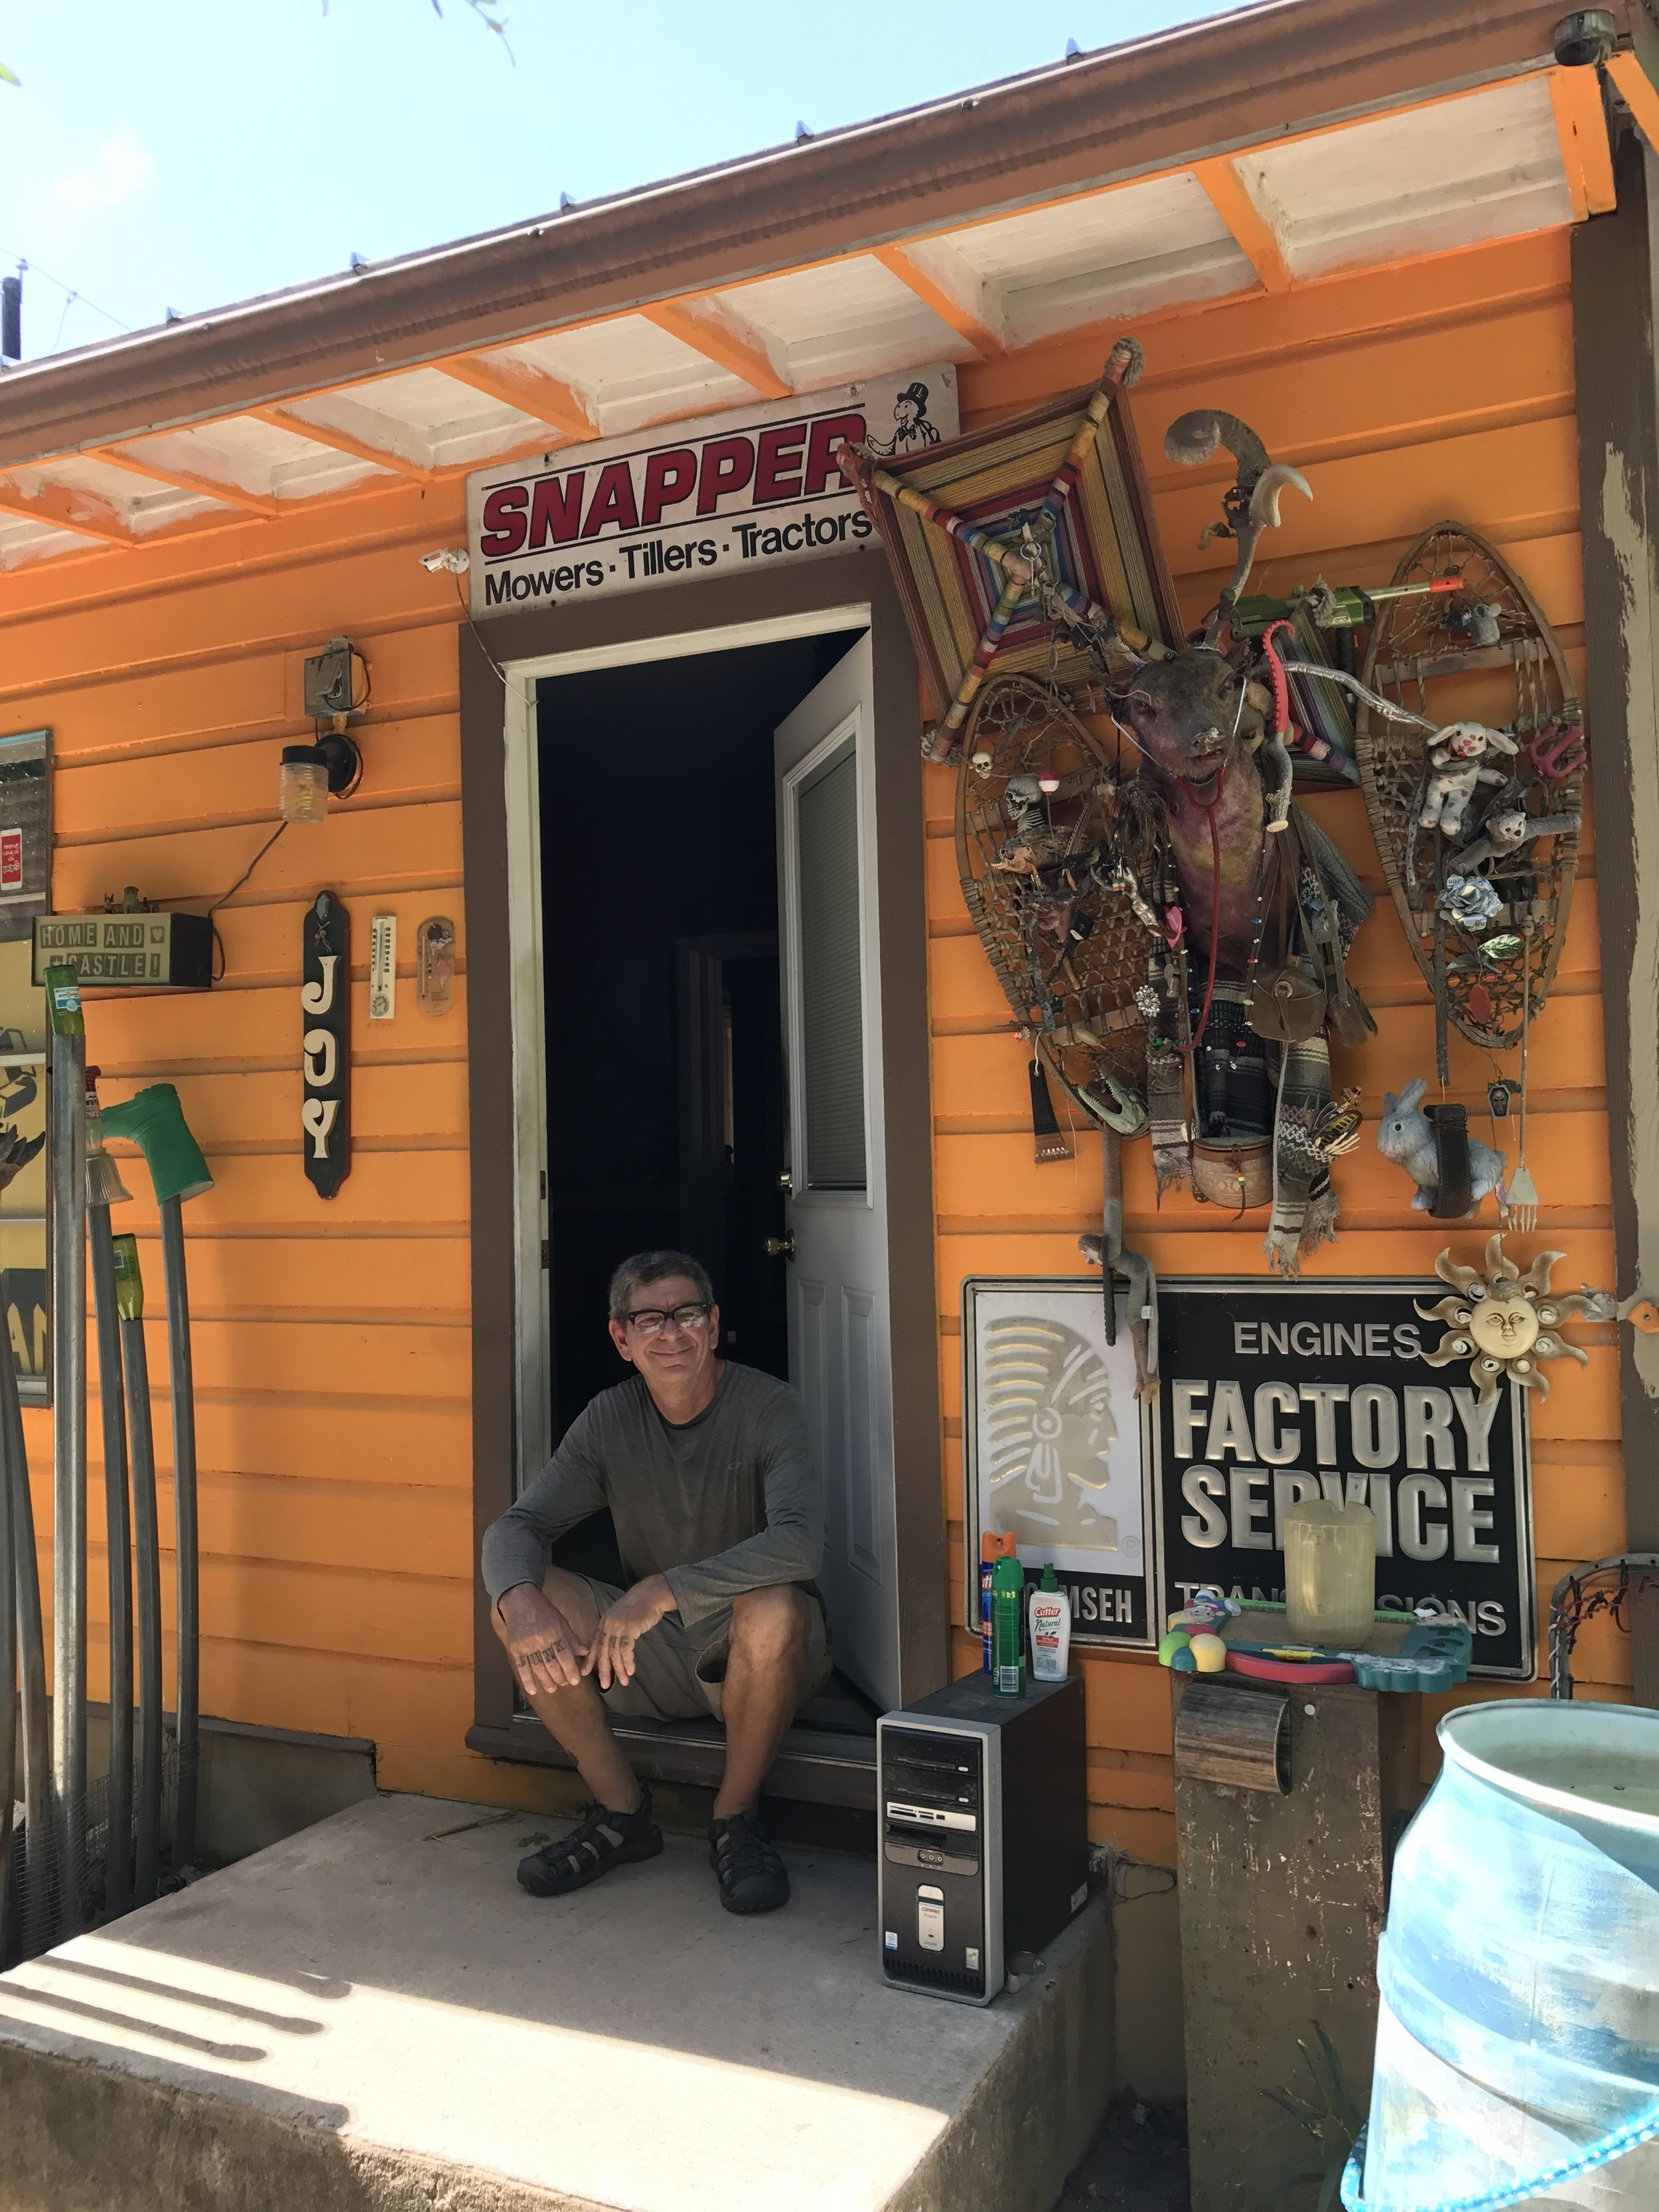 The artist and creator. Contact him for an appointment, don't just show up. The Cathedral of Junk is by appointment only.